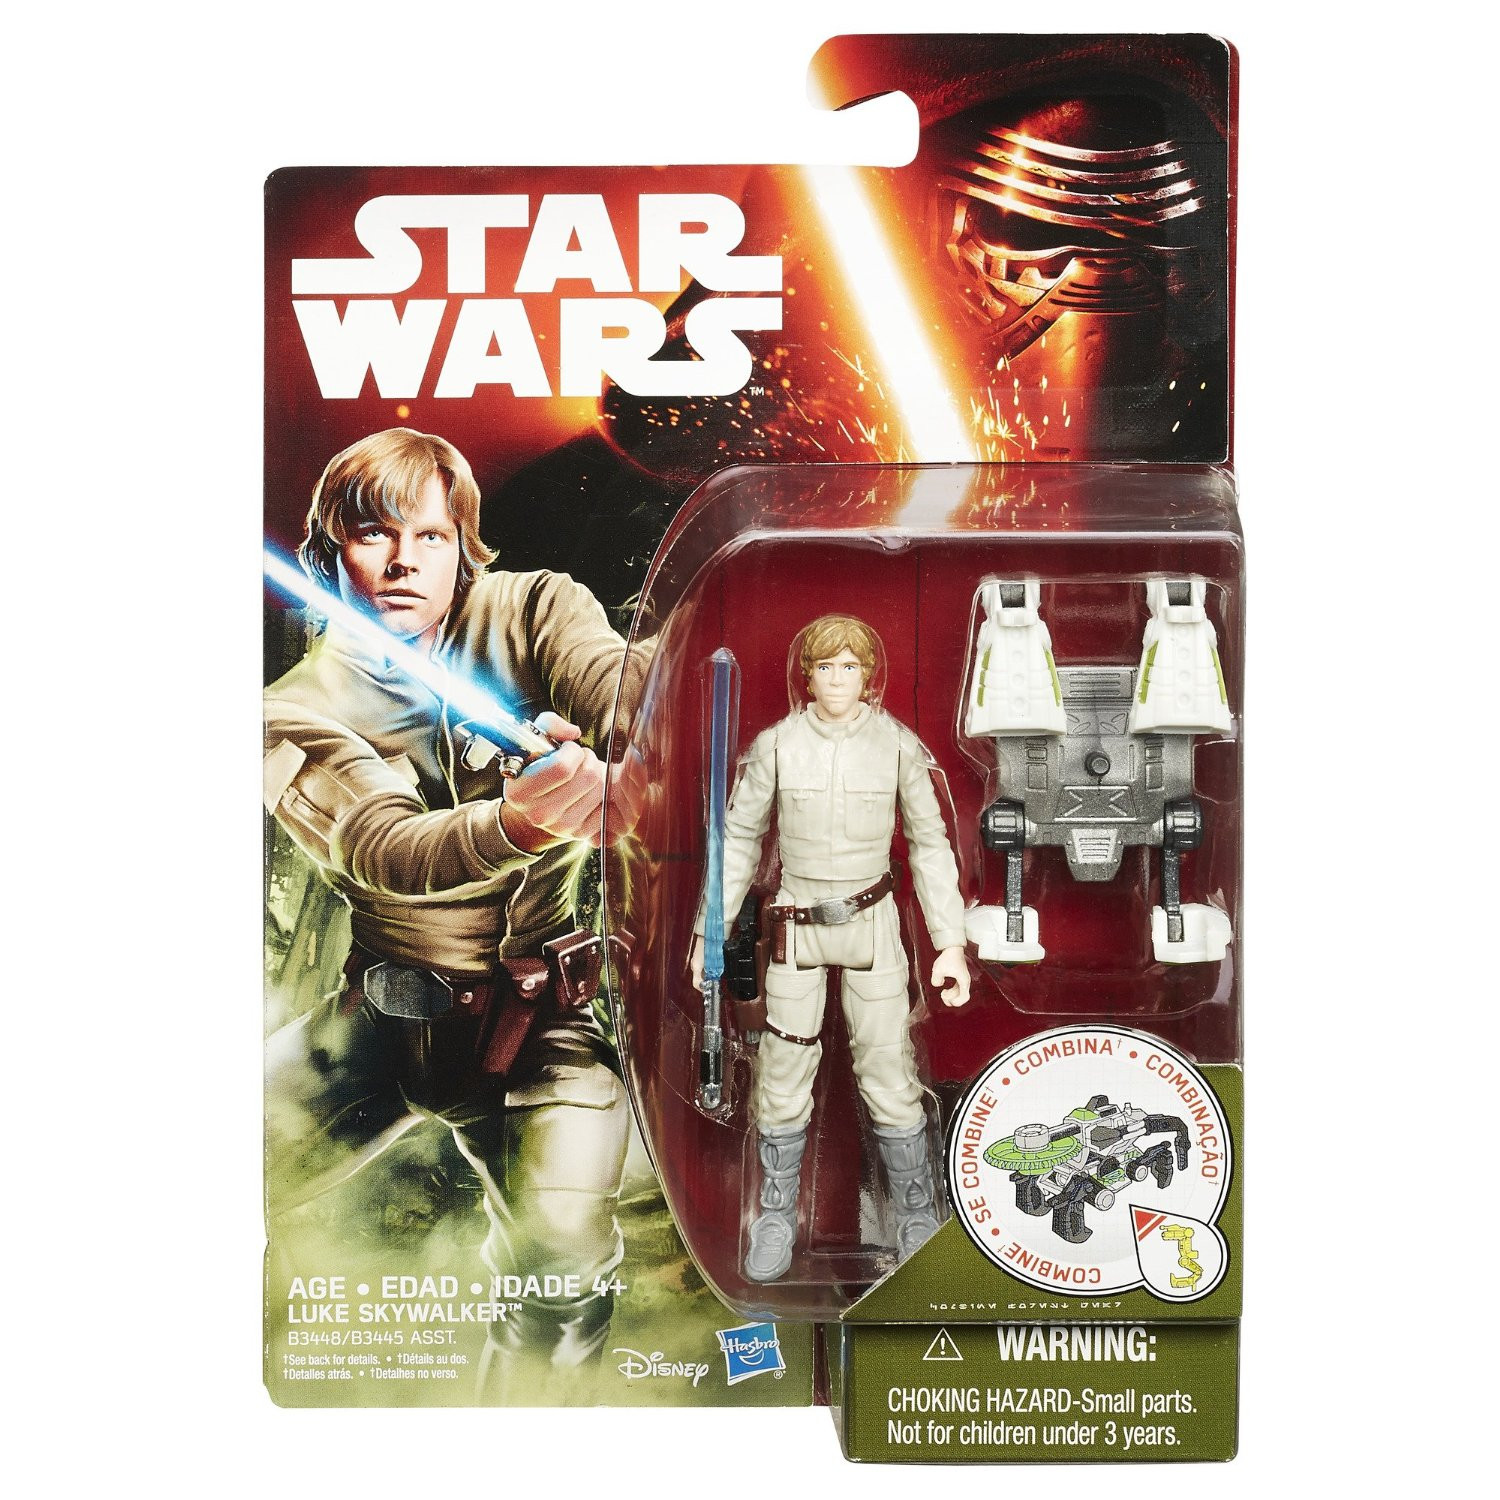 Luke Skywalker Star Wars Action Figure